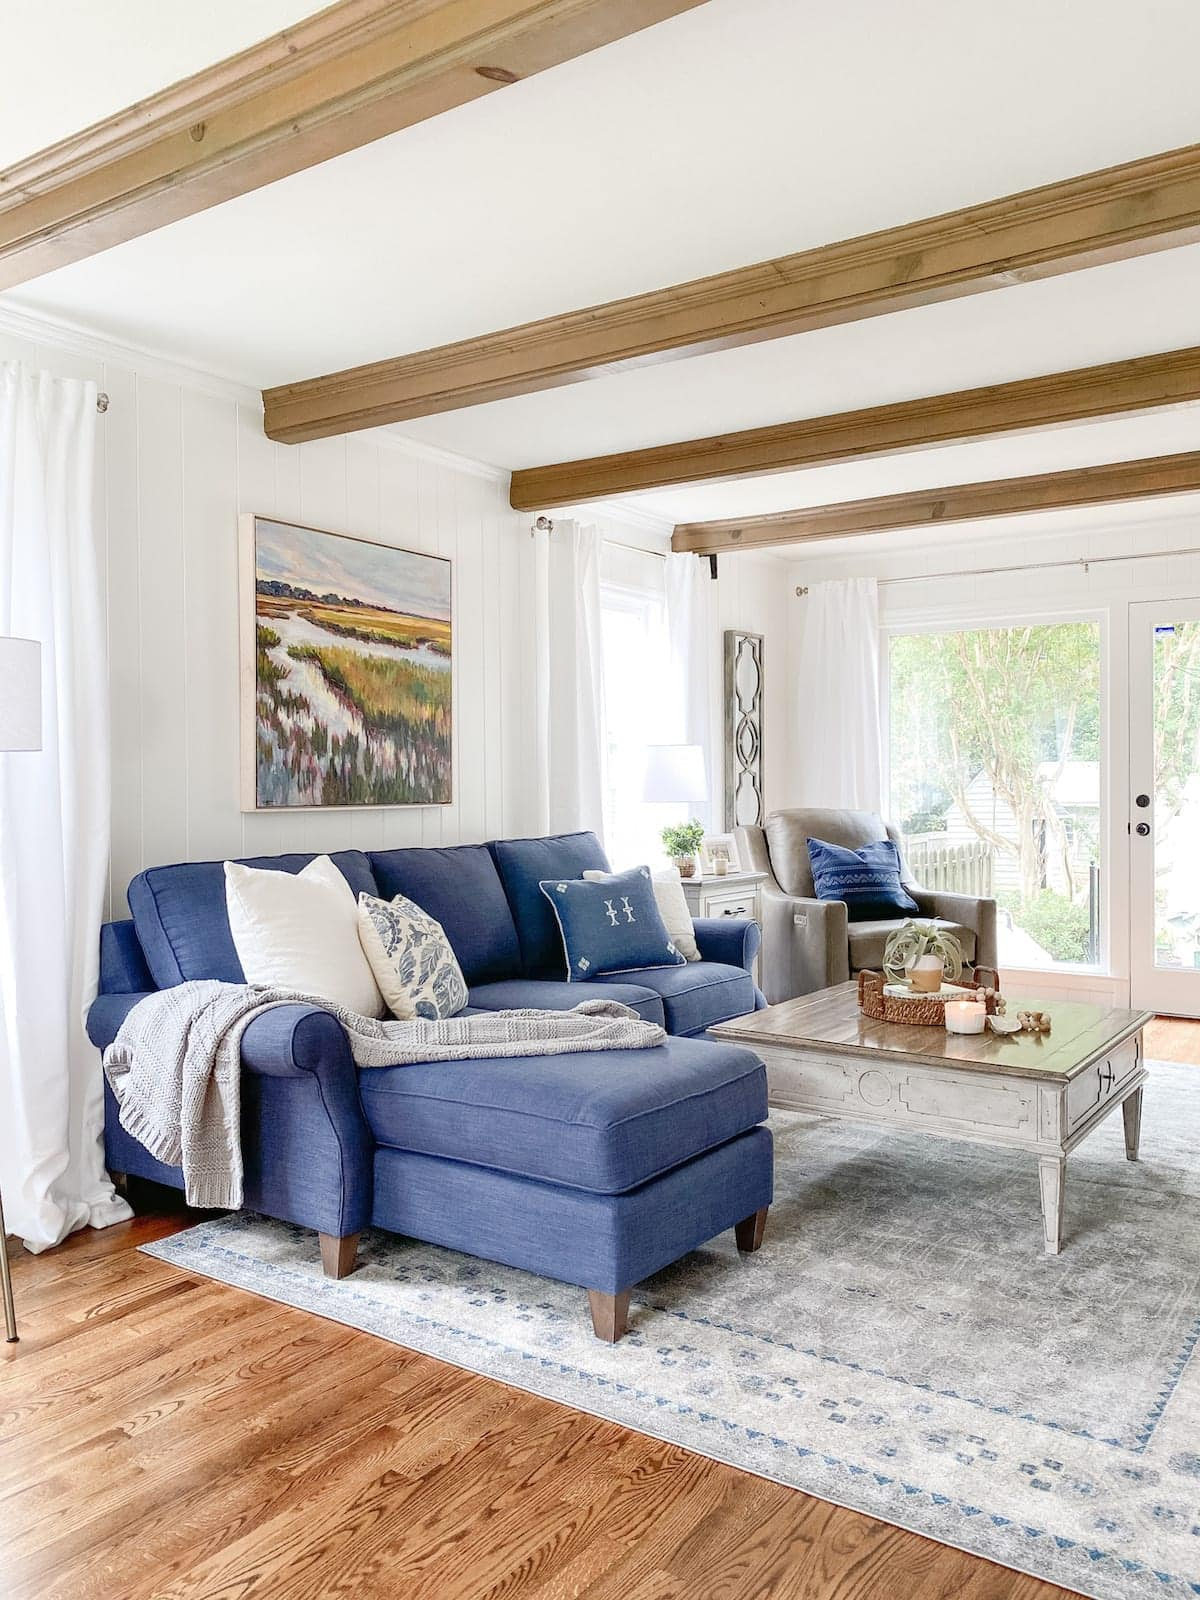 coastal living room with beams, navy sofa, rug, and weathered table